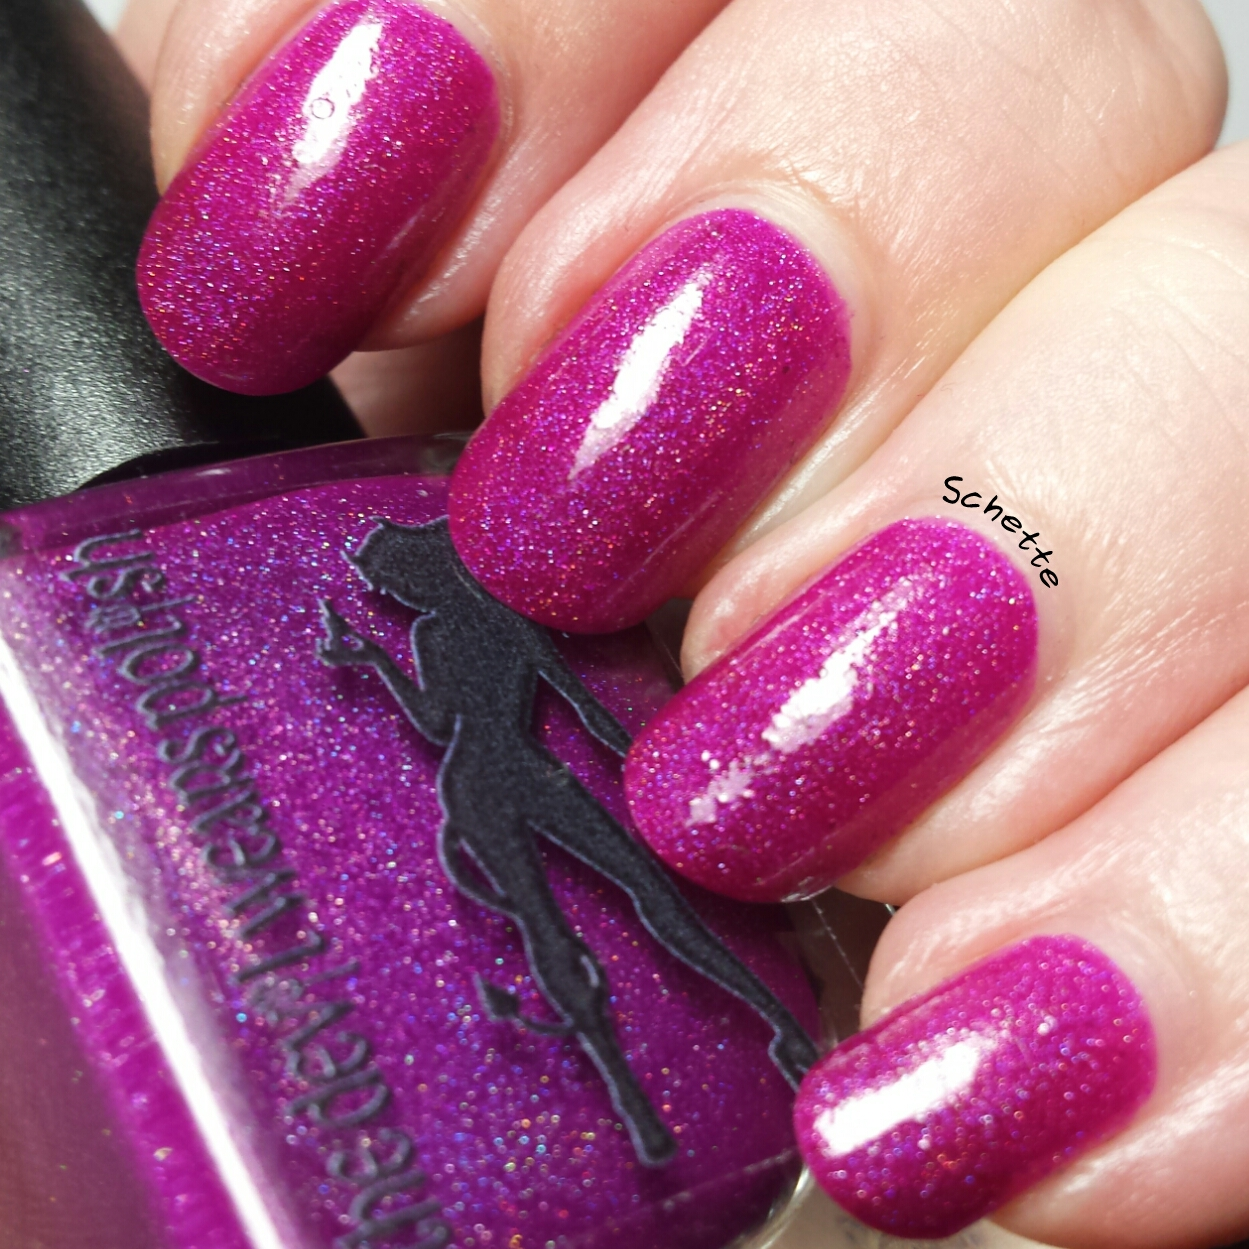 The devil wears polish - Pink Panther, Calypso, Afternoon Delight